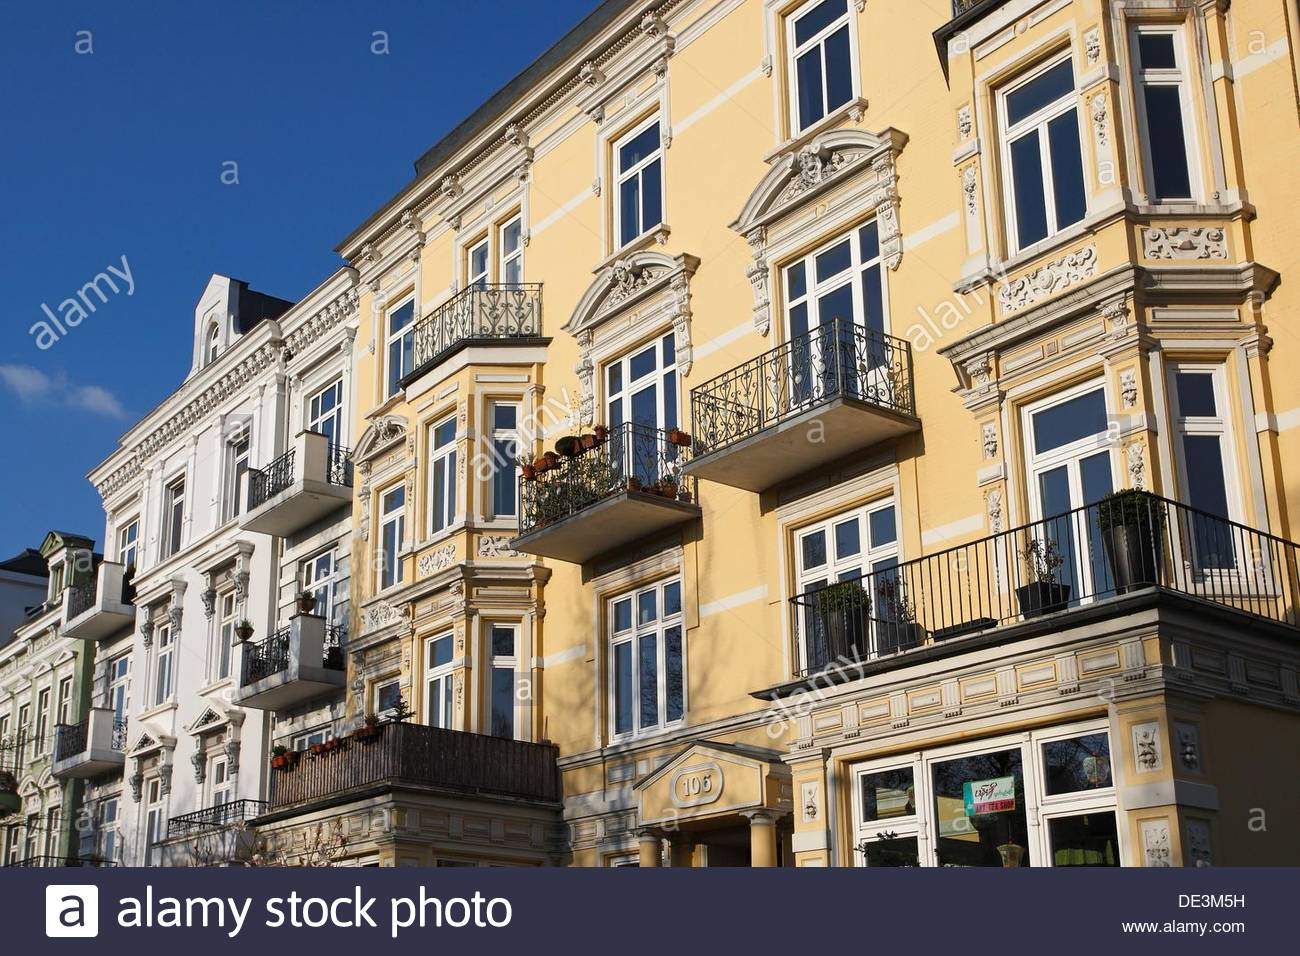 old houses in eppendorf hamburg germany stock photo 60317981 alamy. Black Bedroom Furniture Sets. Home Design Ideas